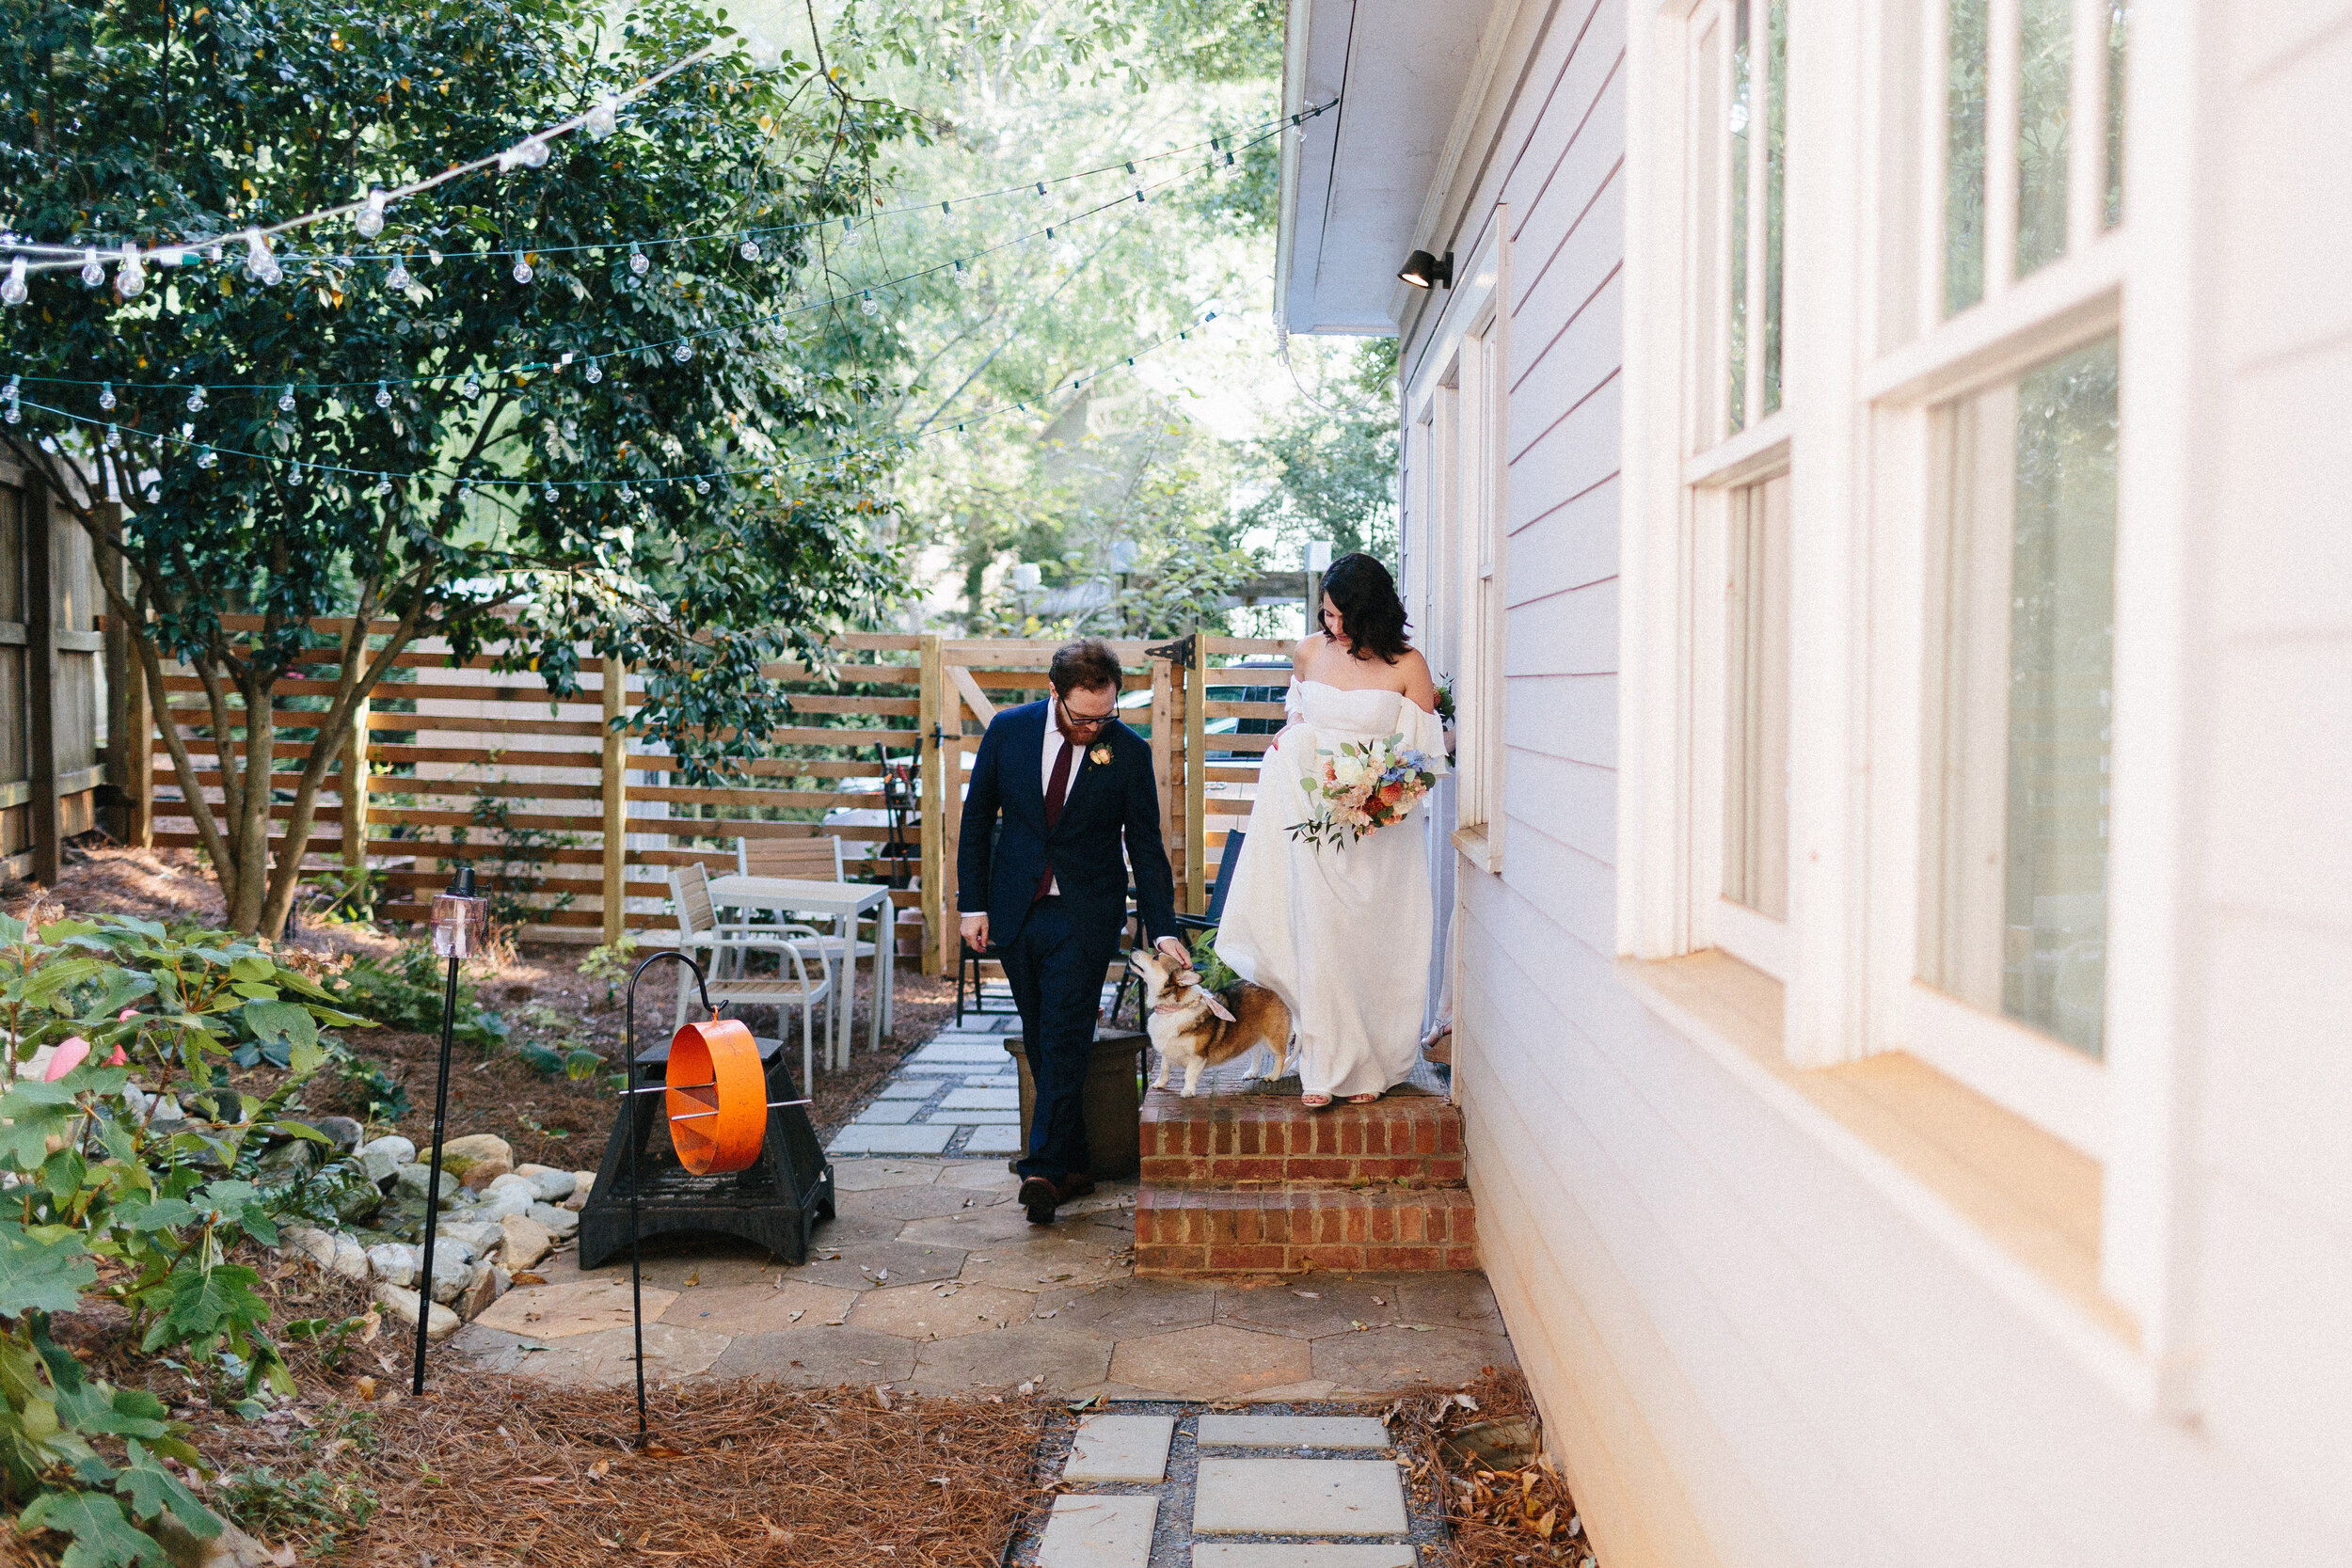 backyard_sun_in_my_belly_wedding_diy_at_home_atlanta_inman_park_arty_photographer_1430.jpg